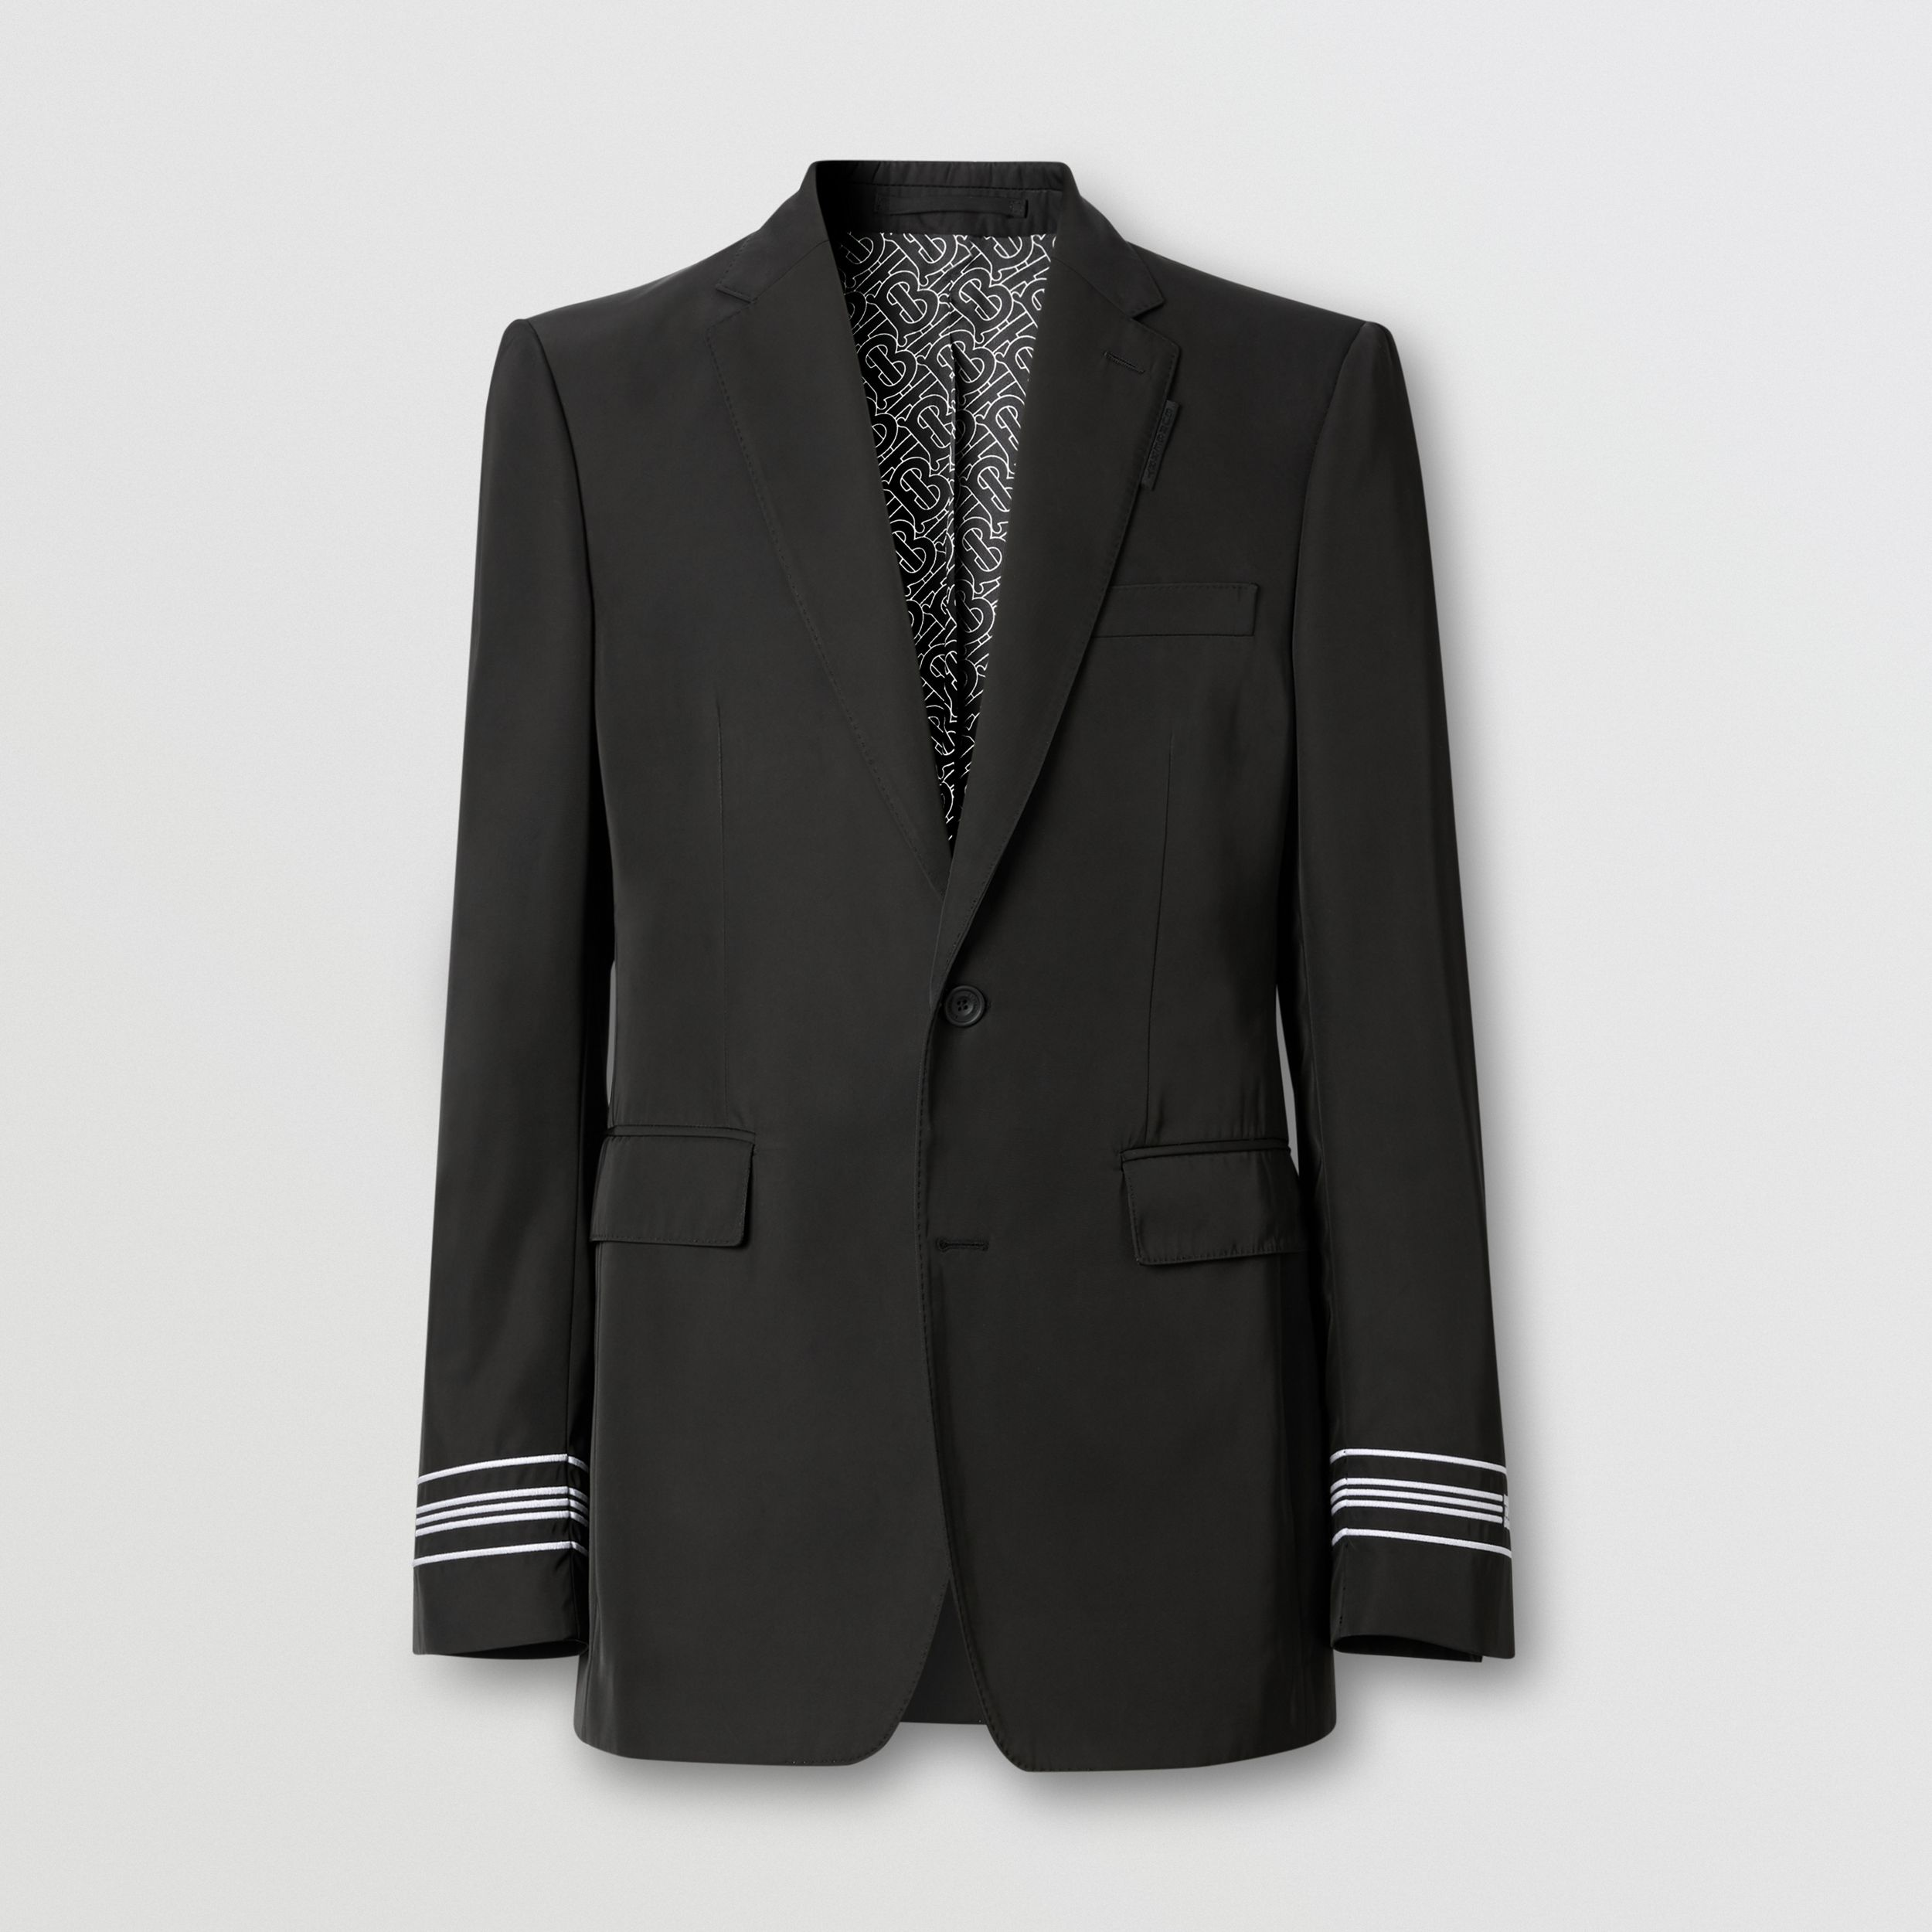 Classic Fit Stripe Detail Technical Twill Tailored Jacket in Black - Men | Burberry - 4